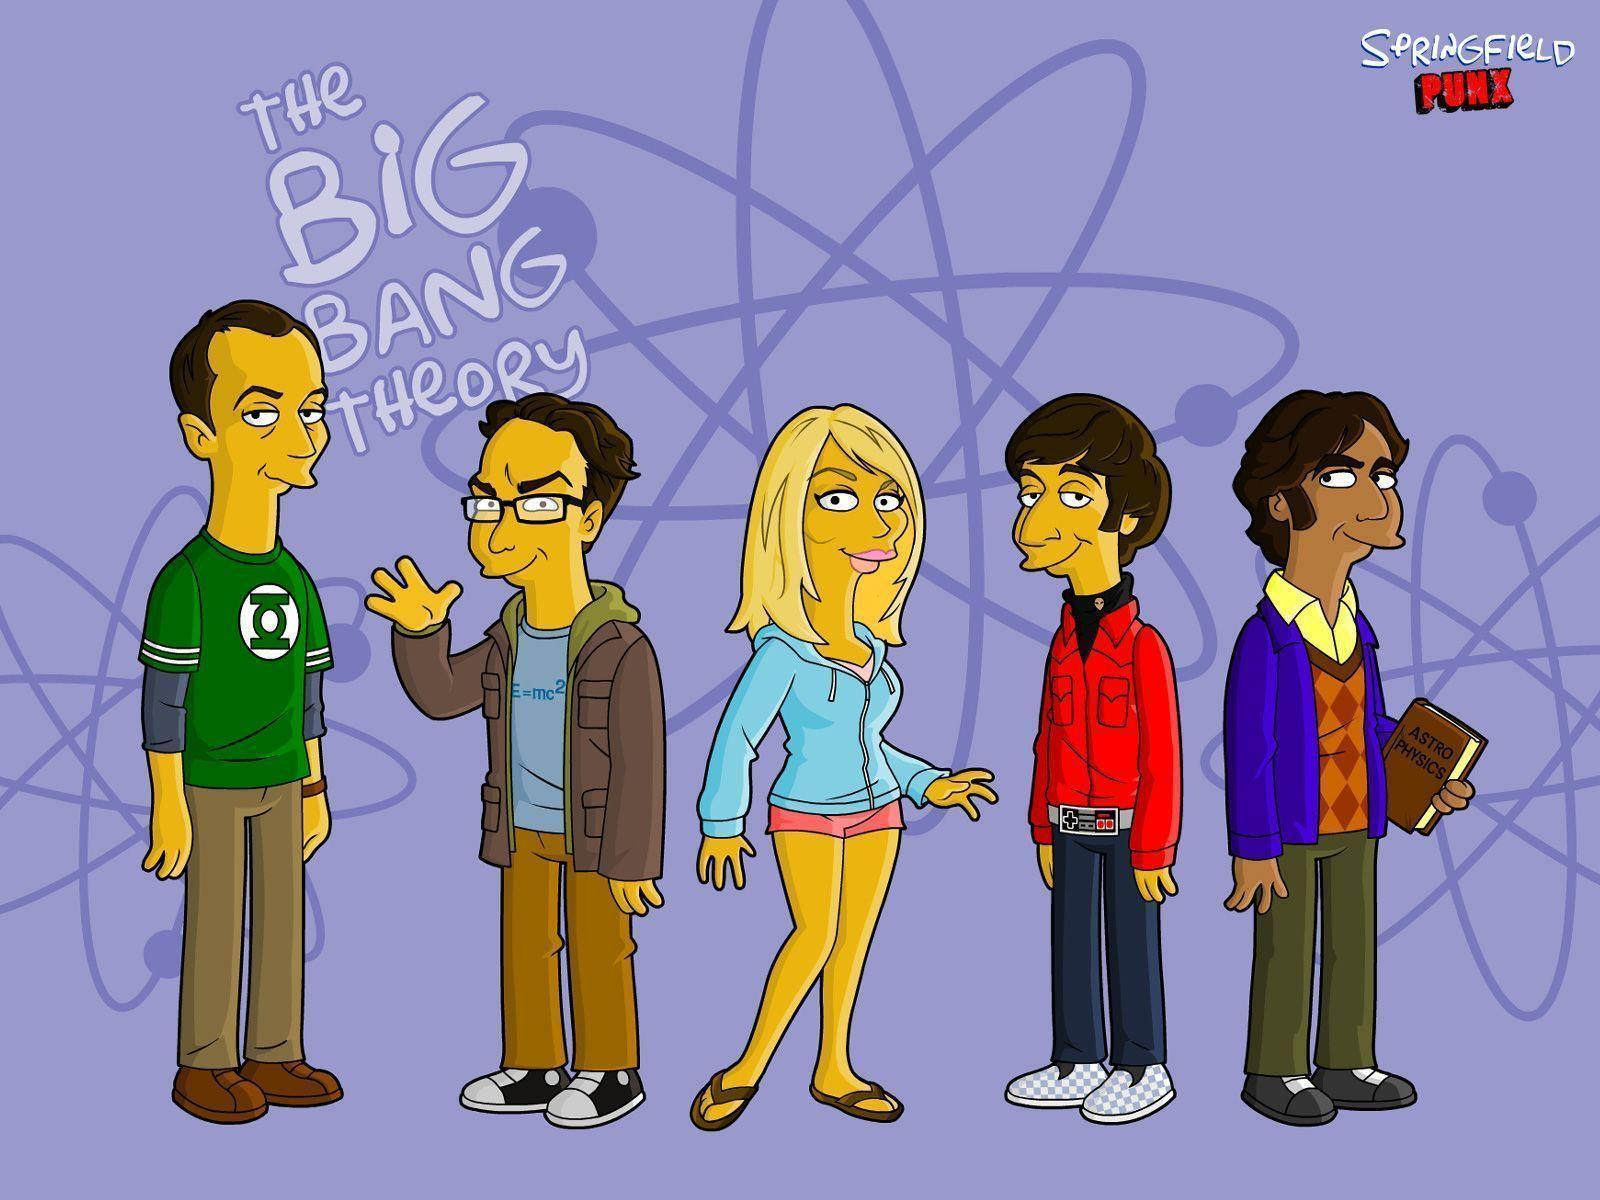 Images For > The Big Bang Theory Logo Wallpaper